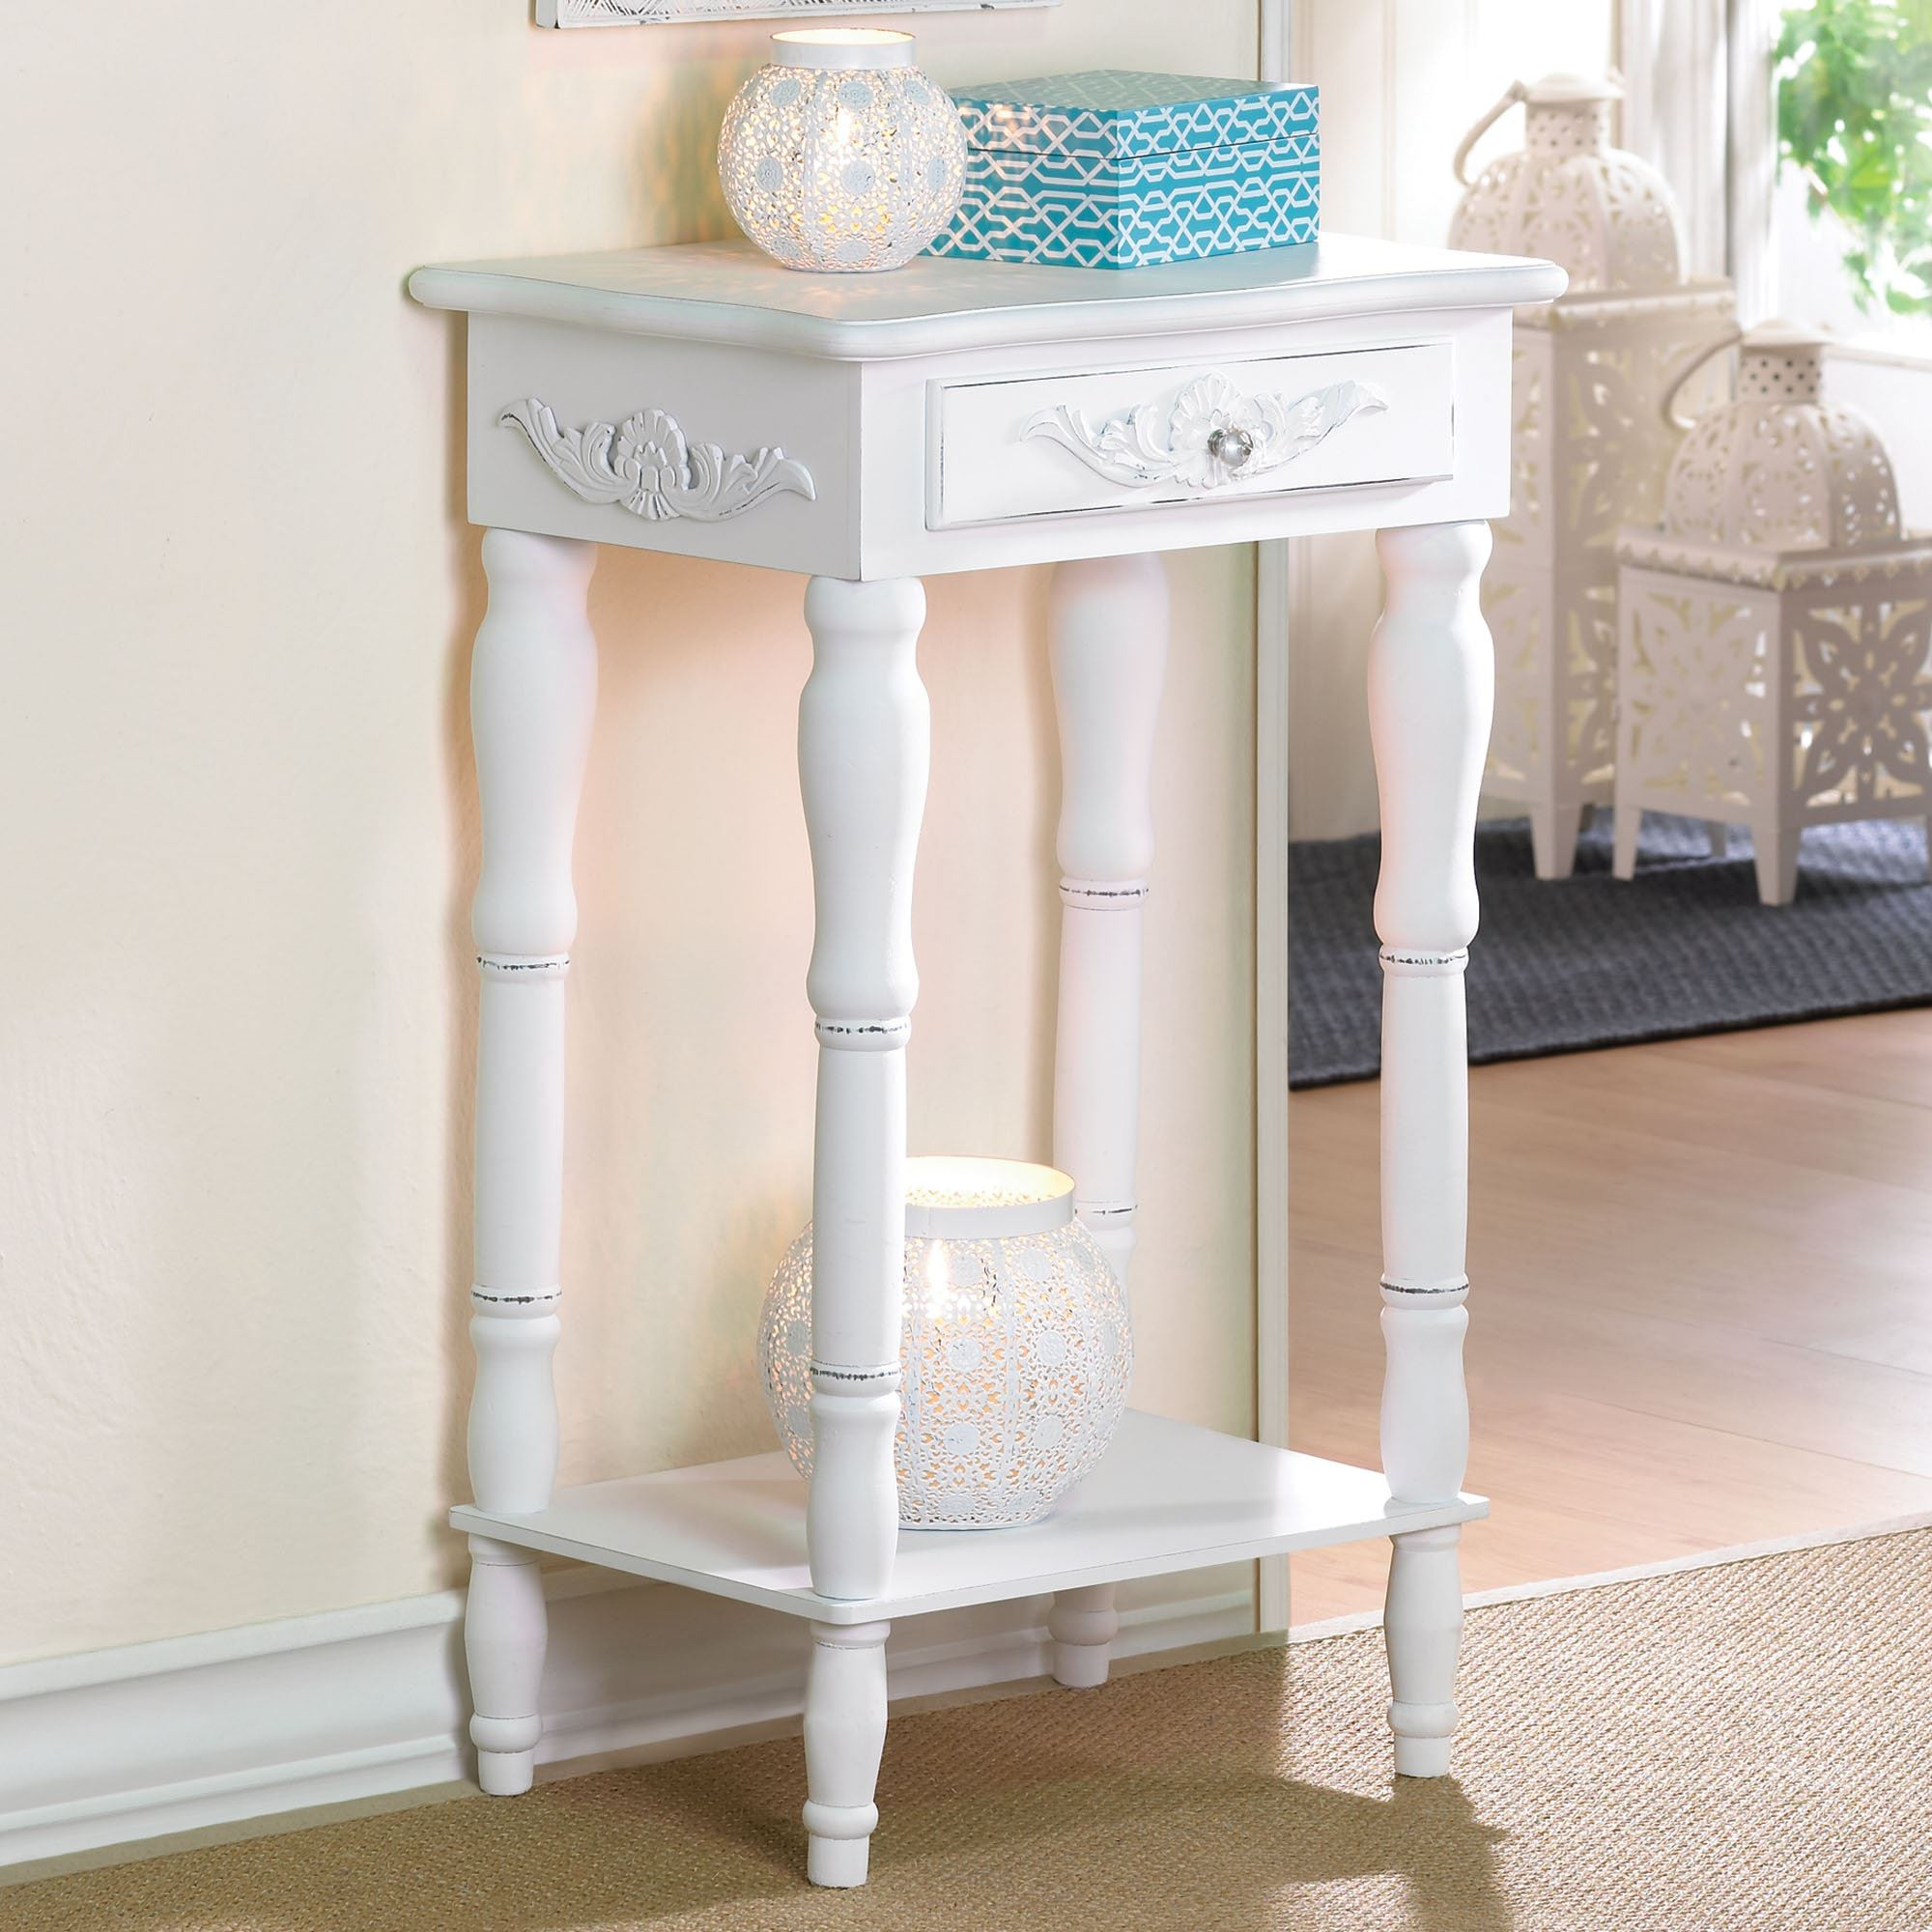 cosenza antique white accent table with drawer small end tables touch zoom gray area rug beach chairs bunnings butler style coffee hairpin legs black bedroom lamp sets round